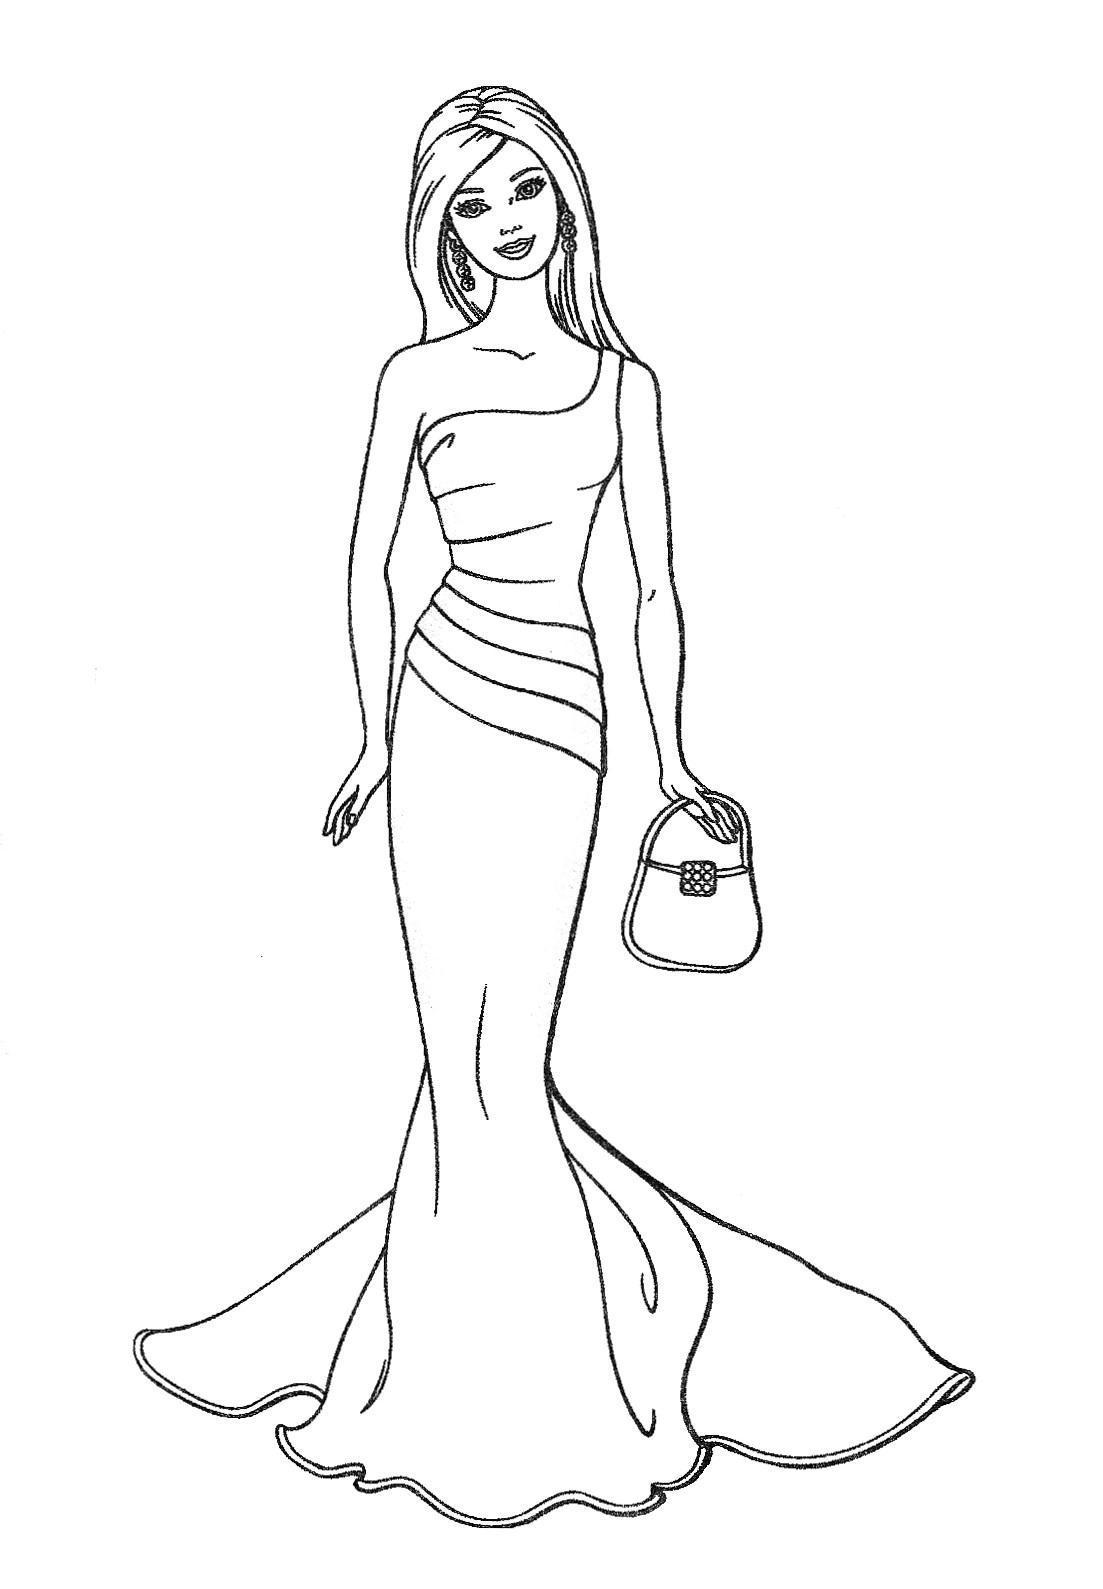 barbie coloring pages free - Printable Barbie Coloring Pages